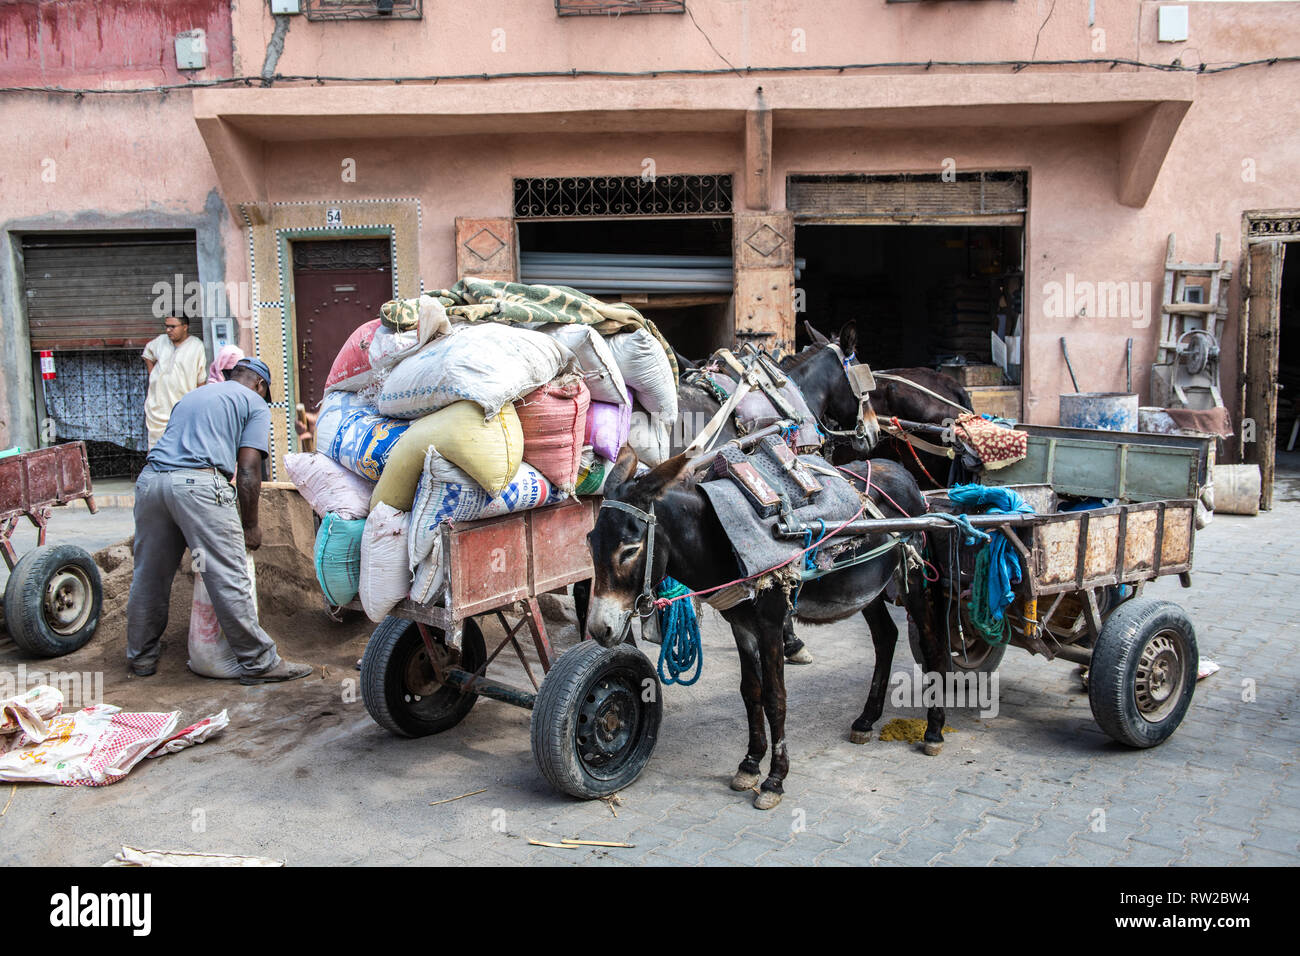 Man loads up back of donkey carts with full burlap bags in medina quarter of Marrekech, Morocco - Stock Image